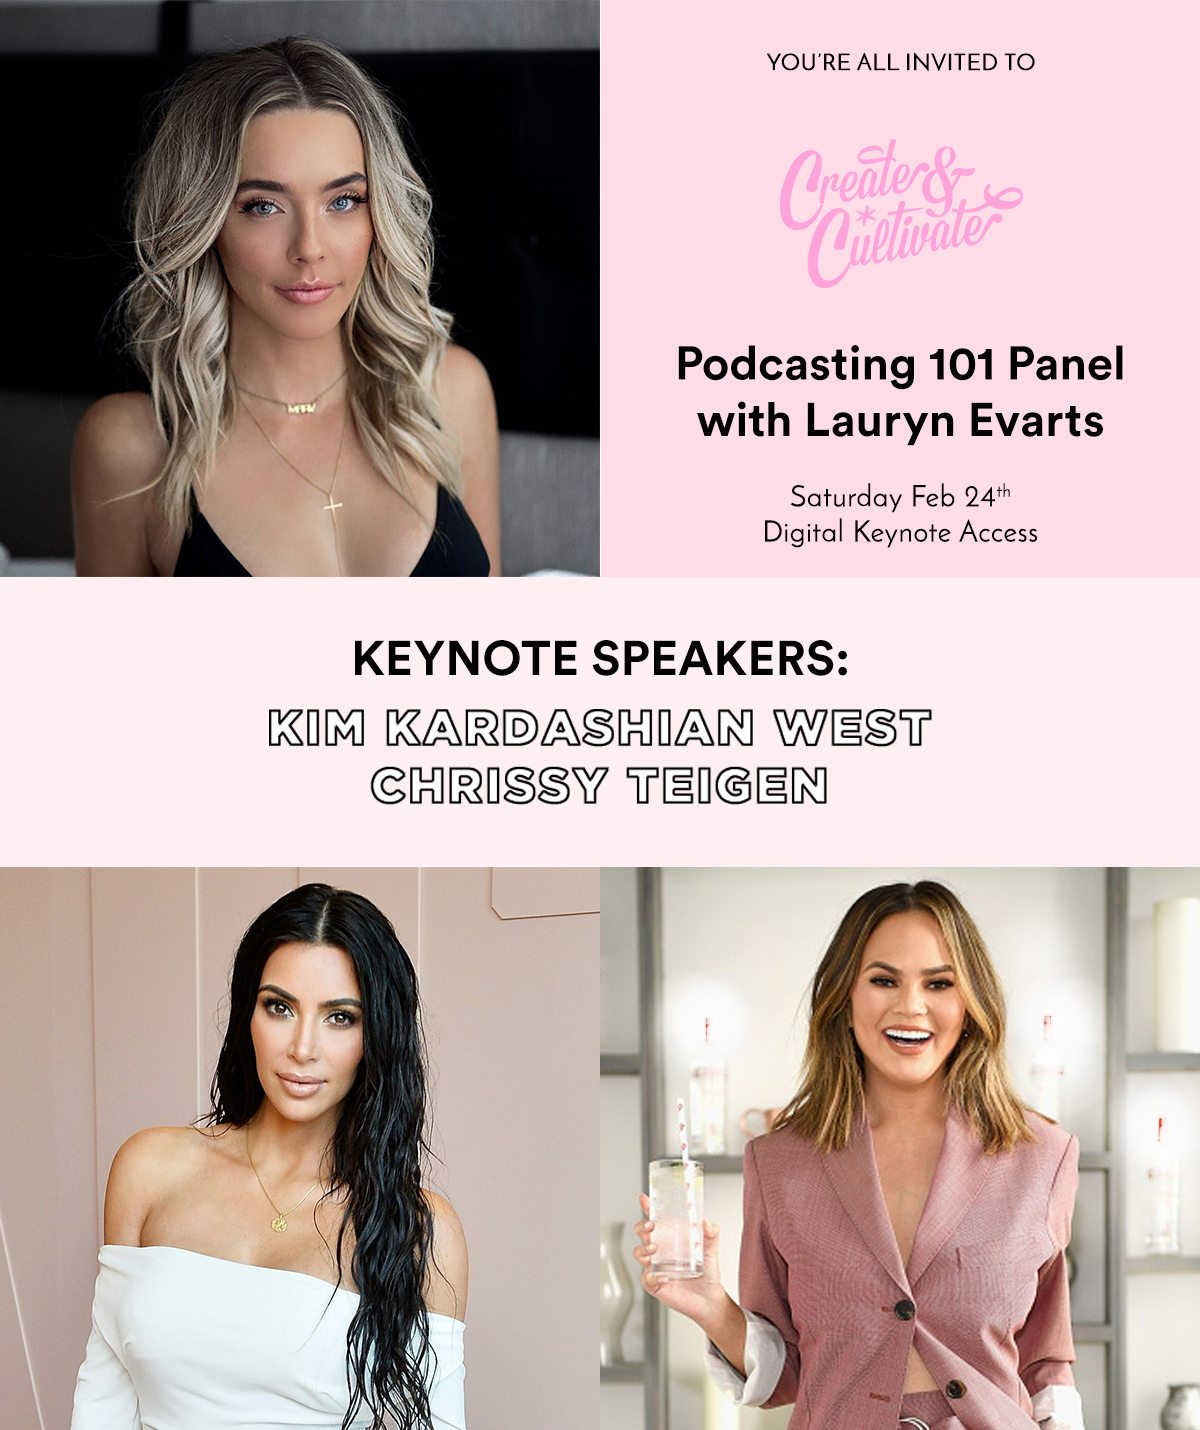 kim kardashian chrissy teigan podcasting conference by the skinny confidential